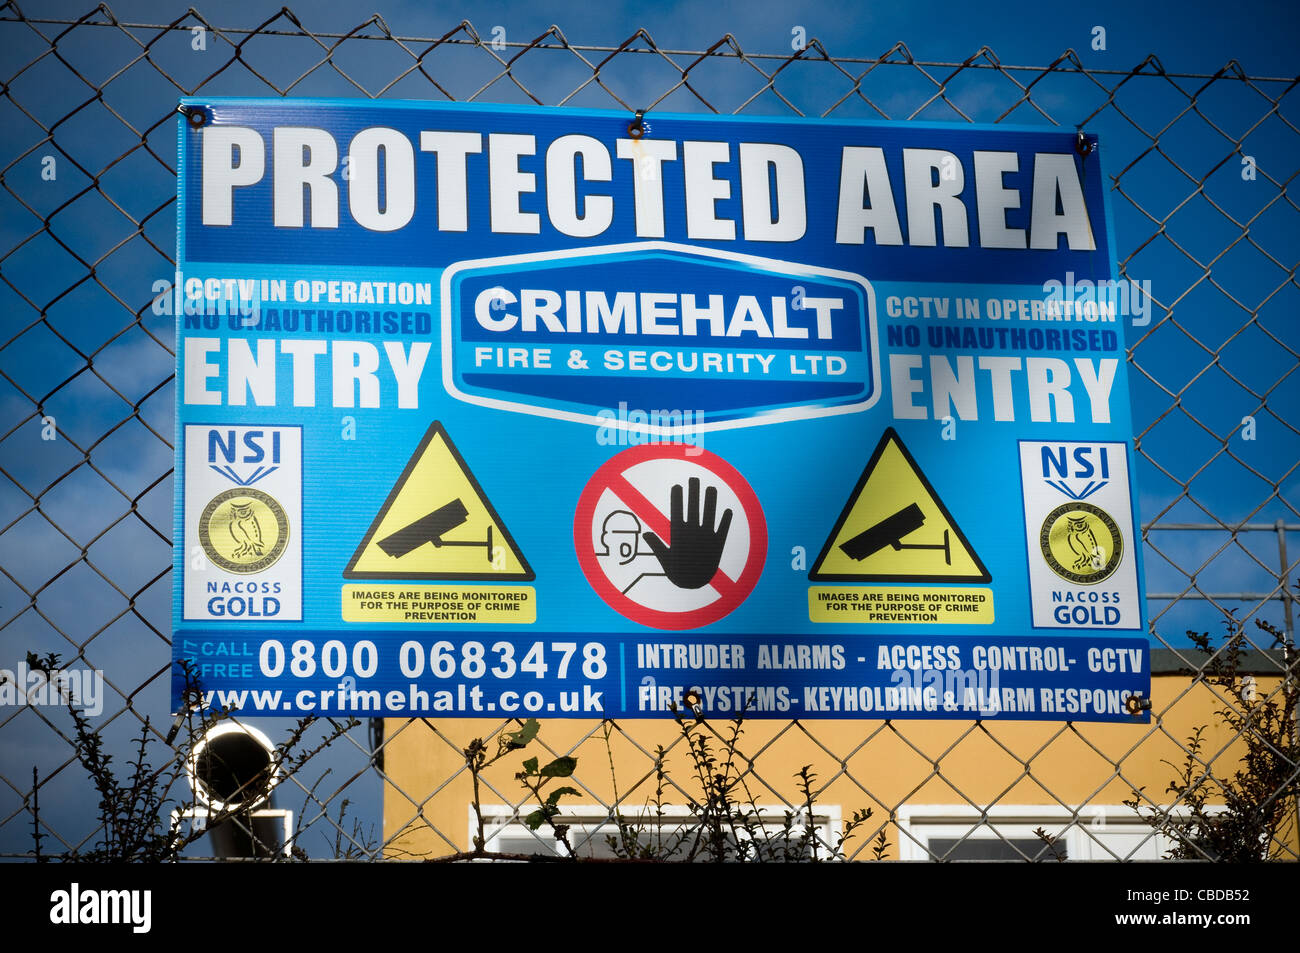 Protected area sign on chain fence - Stock Image